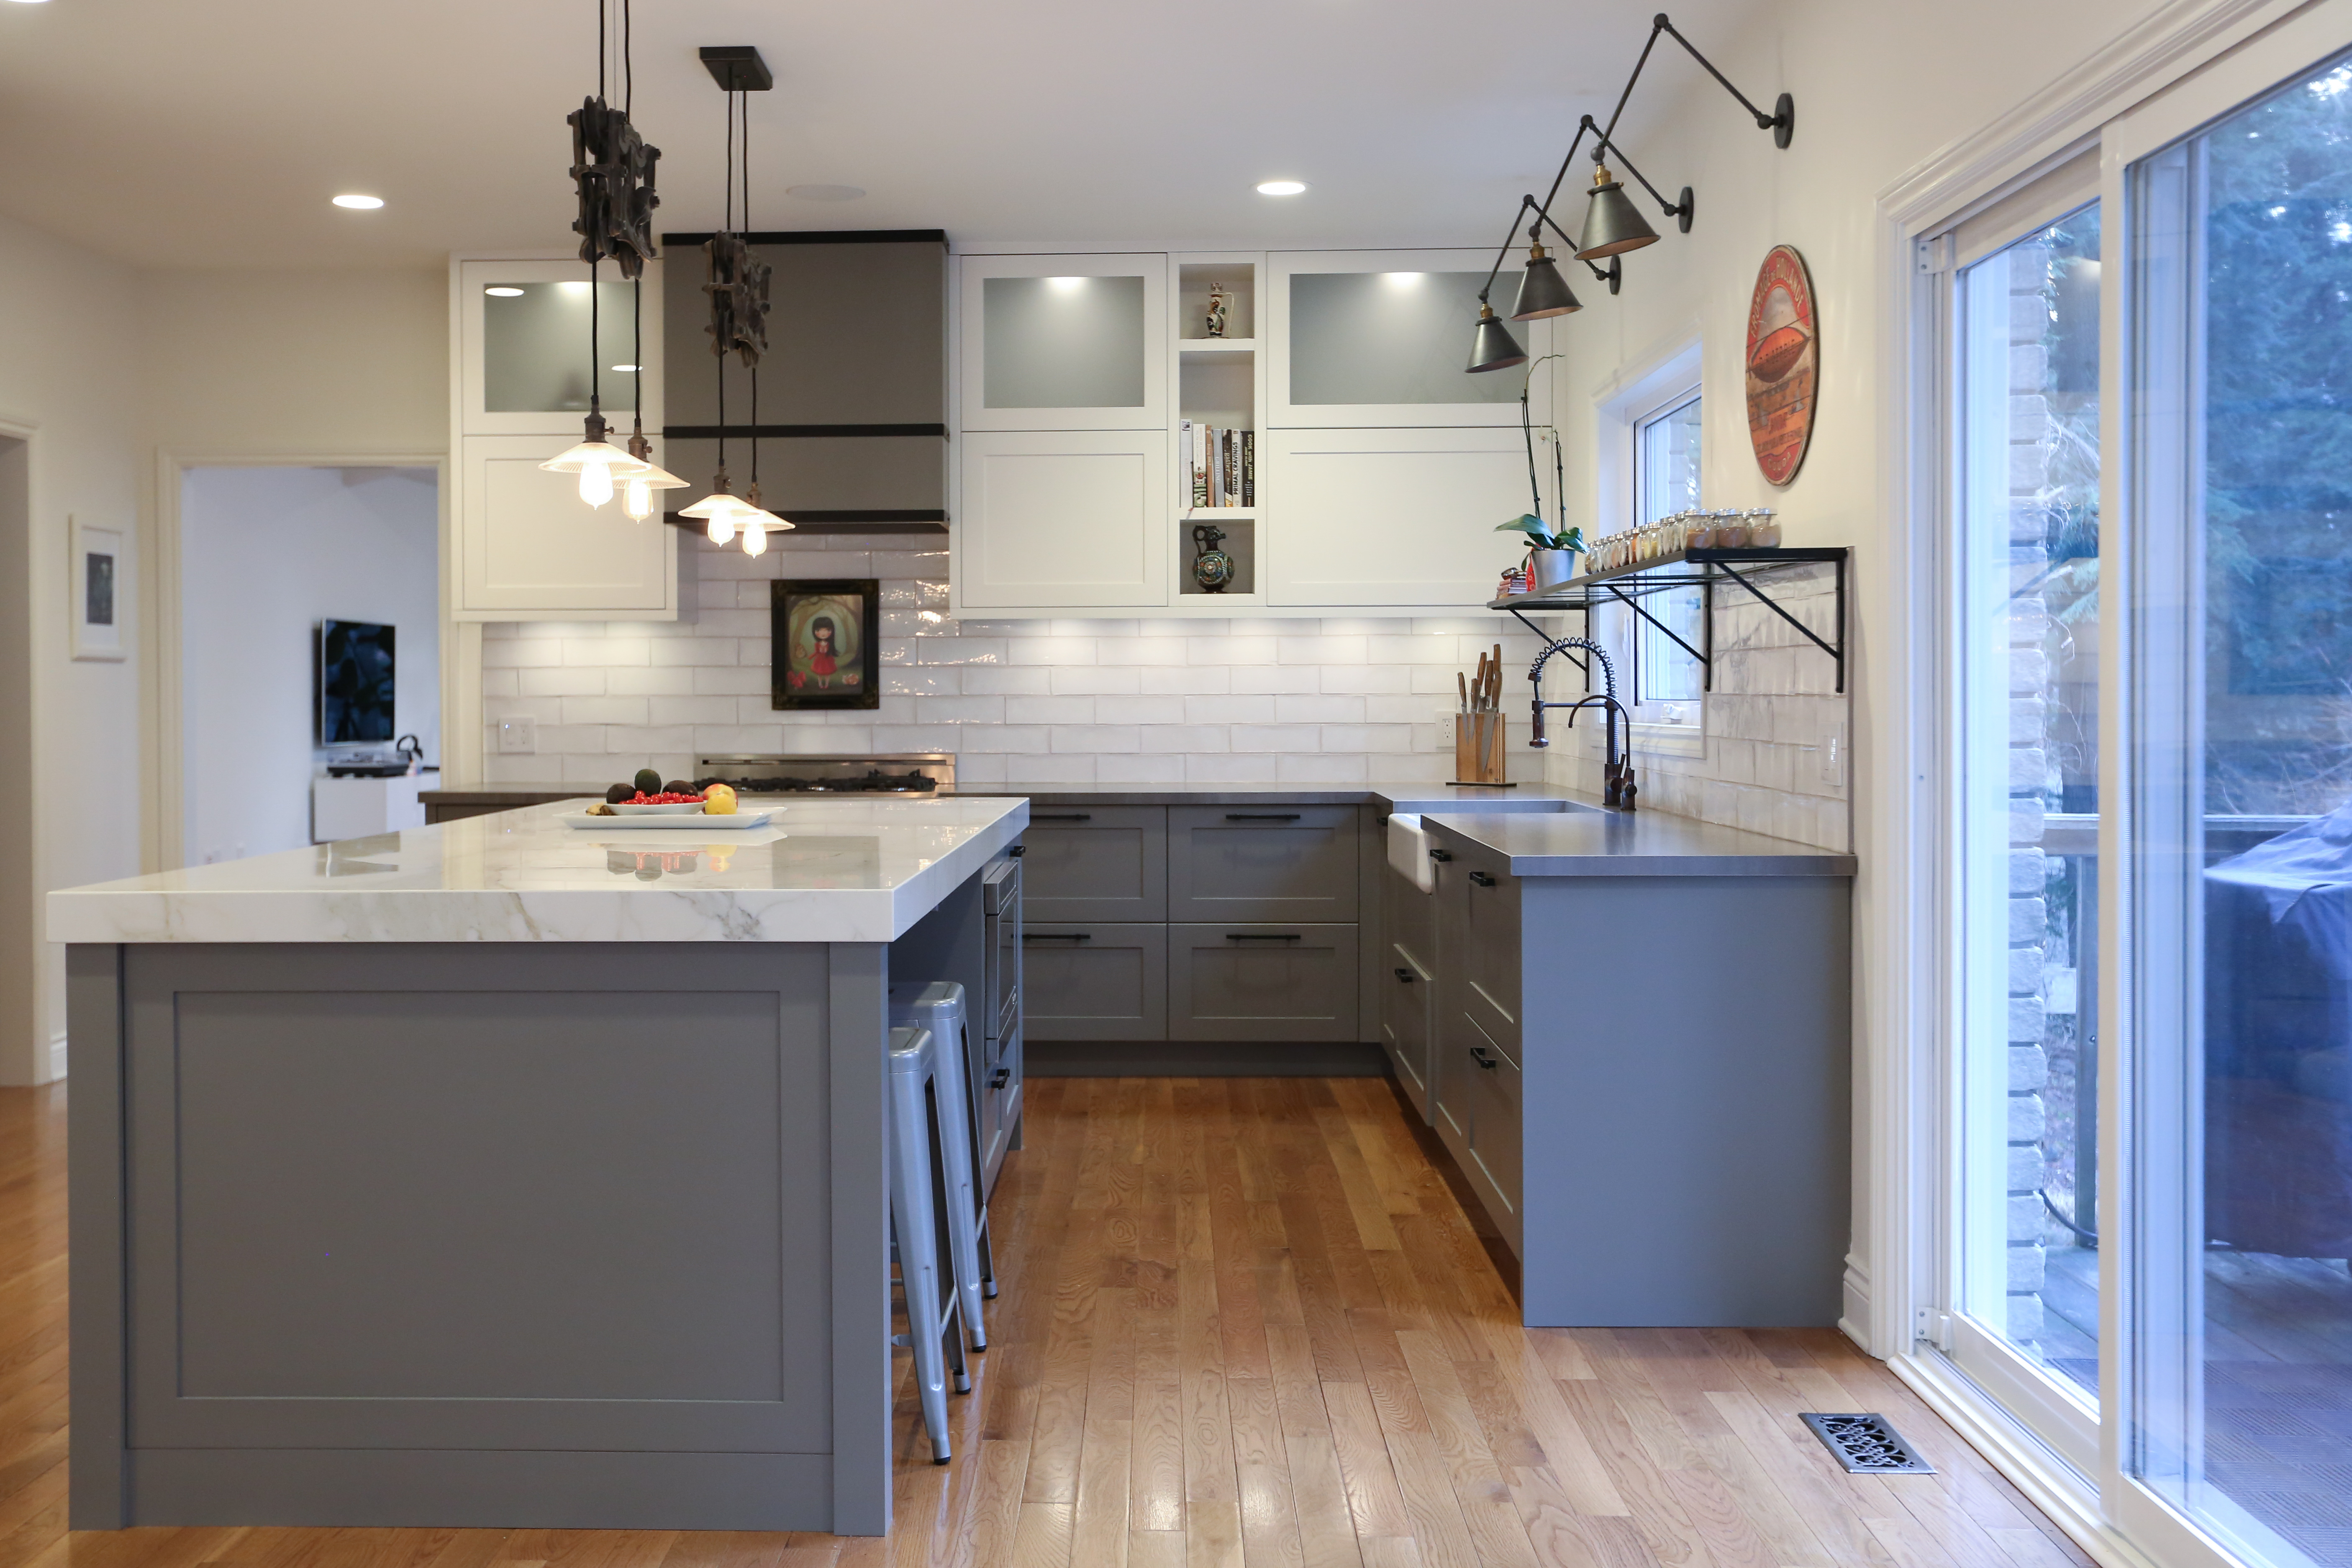 Greenwood Road Modern Cabinetry Design Muti Kitchen And Bath Toronto And Oakville